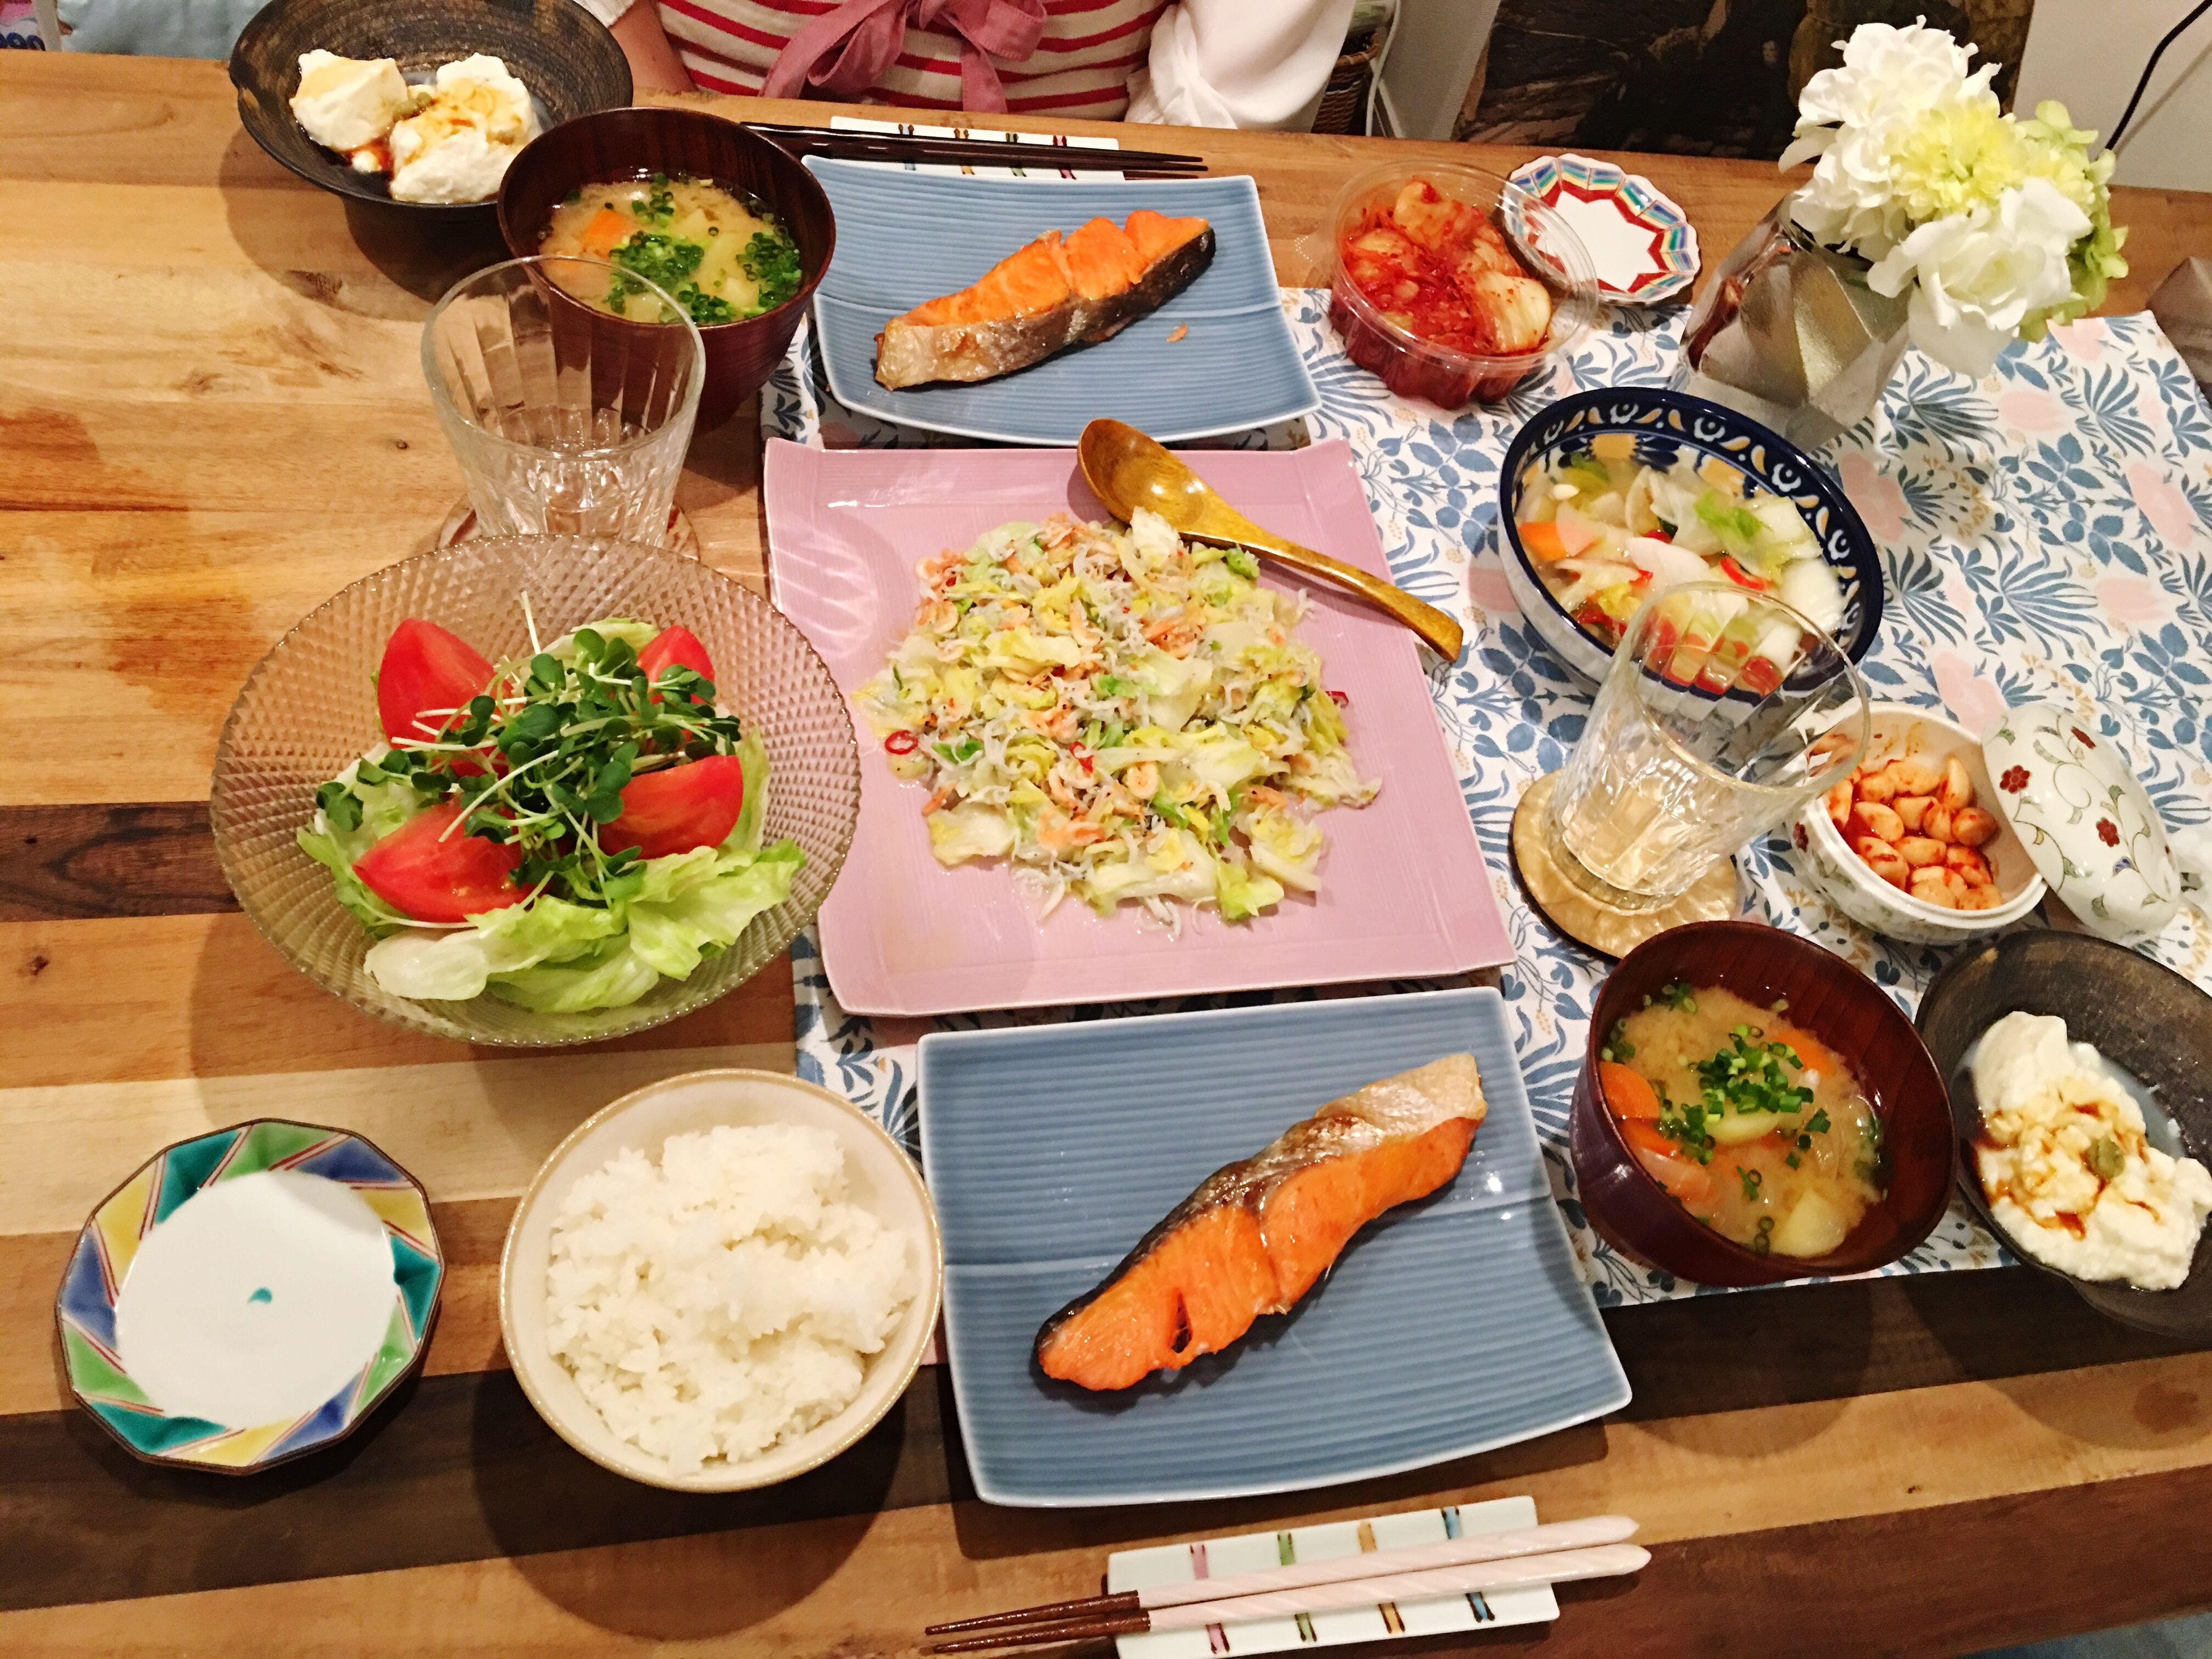 Today's Dinner 紅鮭 じゃがいもと玉ねぎと人参の味噌汁 バルサミコ酢サラダ キャベツとしらすと桜海老のアンチョビ炒め キムチ Salmon - Seafood Potatoes Onion Carrots Miso Soup Salad Balsamic Vinegar Cabbage Smallfish Sakuraebi Anchovy Kimuchi Food Porn Foodporn SoDelicious Indoors  Healthy Eating Ready-to-eat